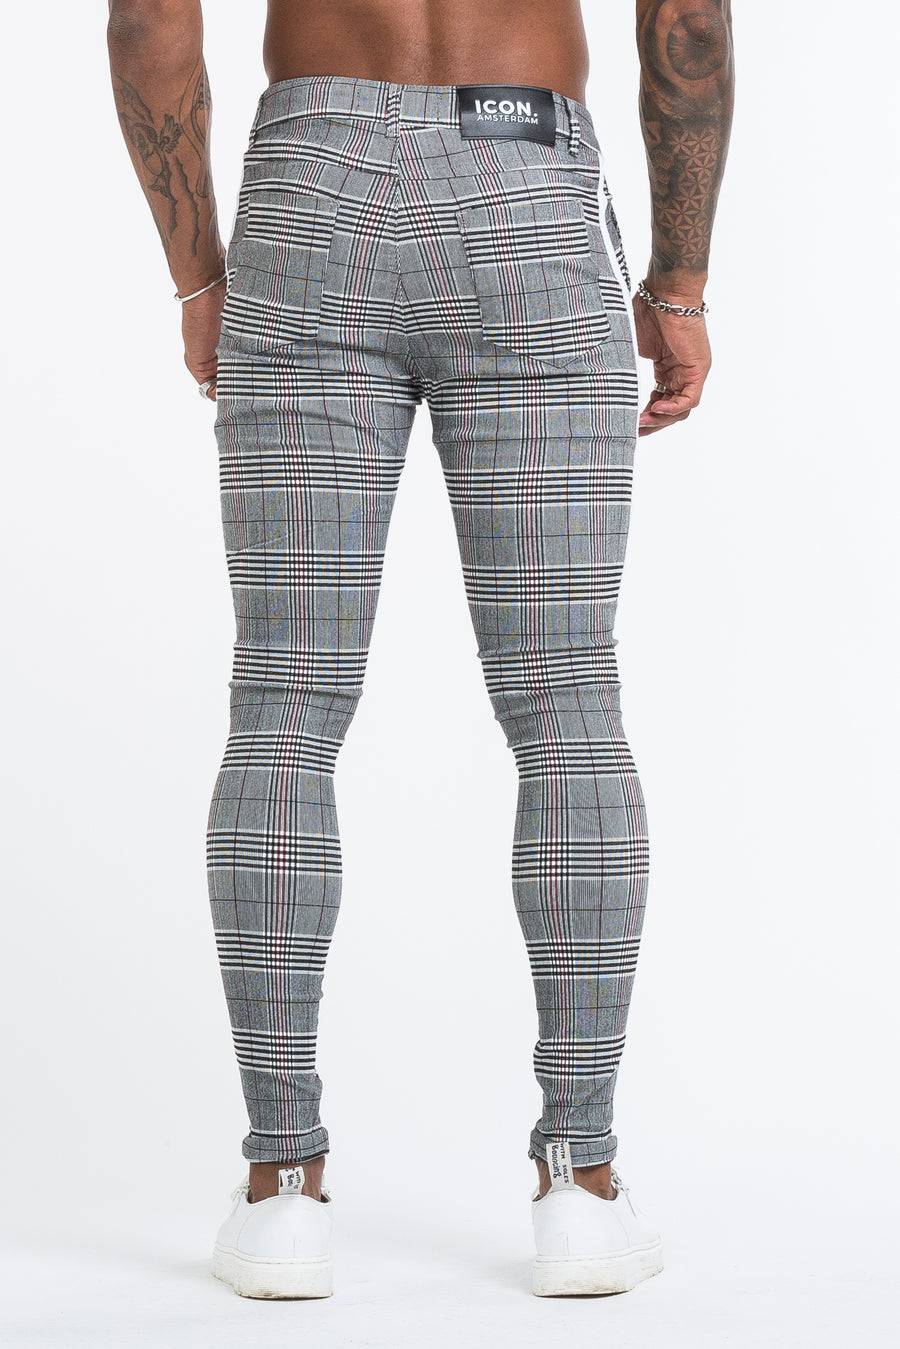 THE VIERA TROUSERS - GREY/WHITE - ICON. AMSTERDAM